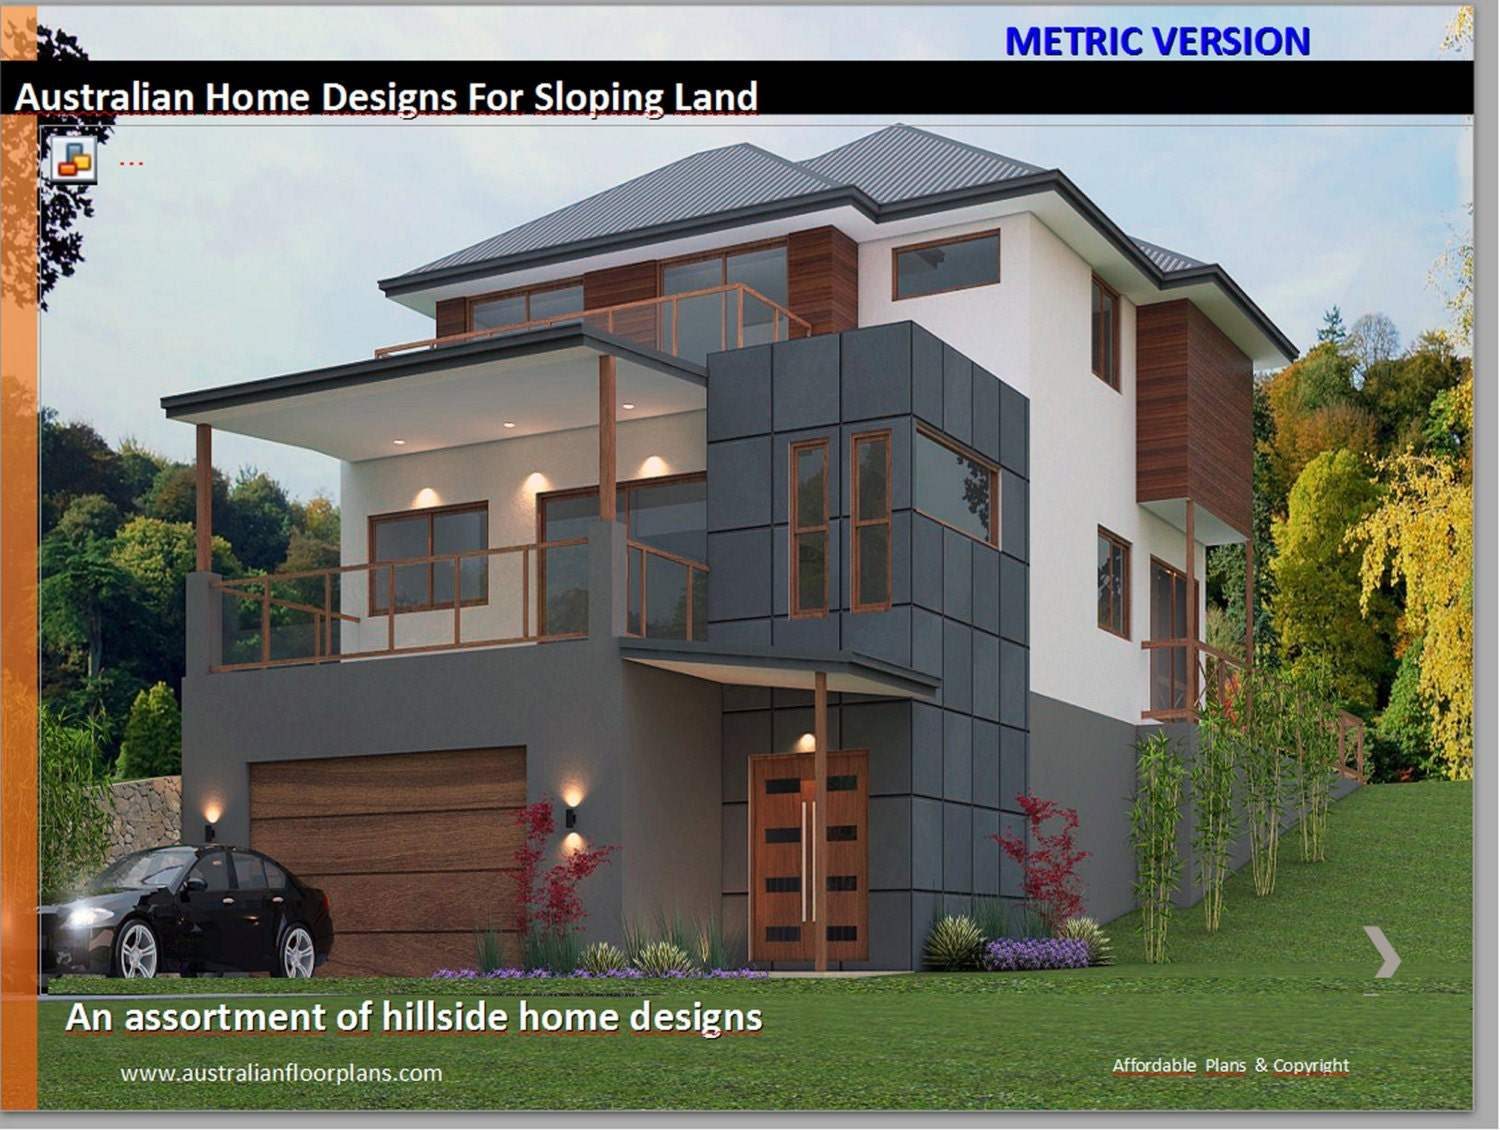 hillside house plans hillside house floor plans for sloping land over 50 homes 7689